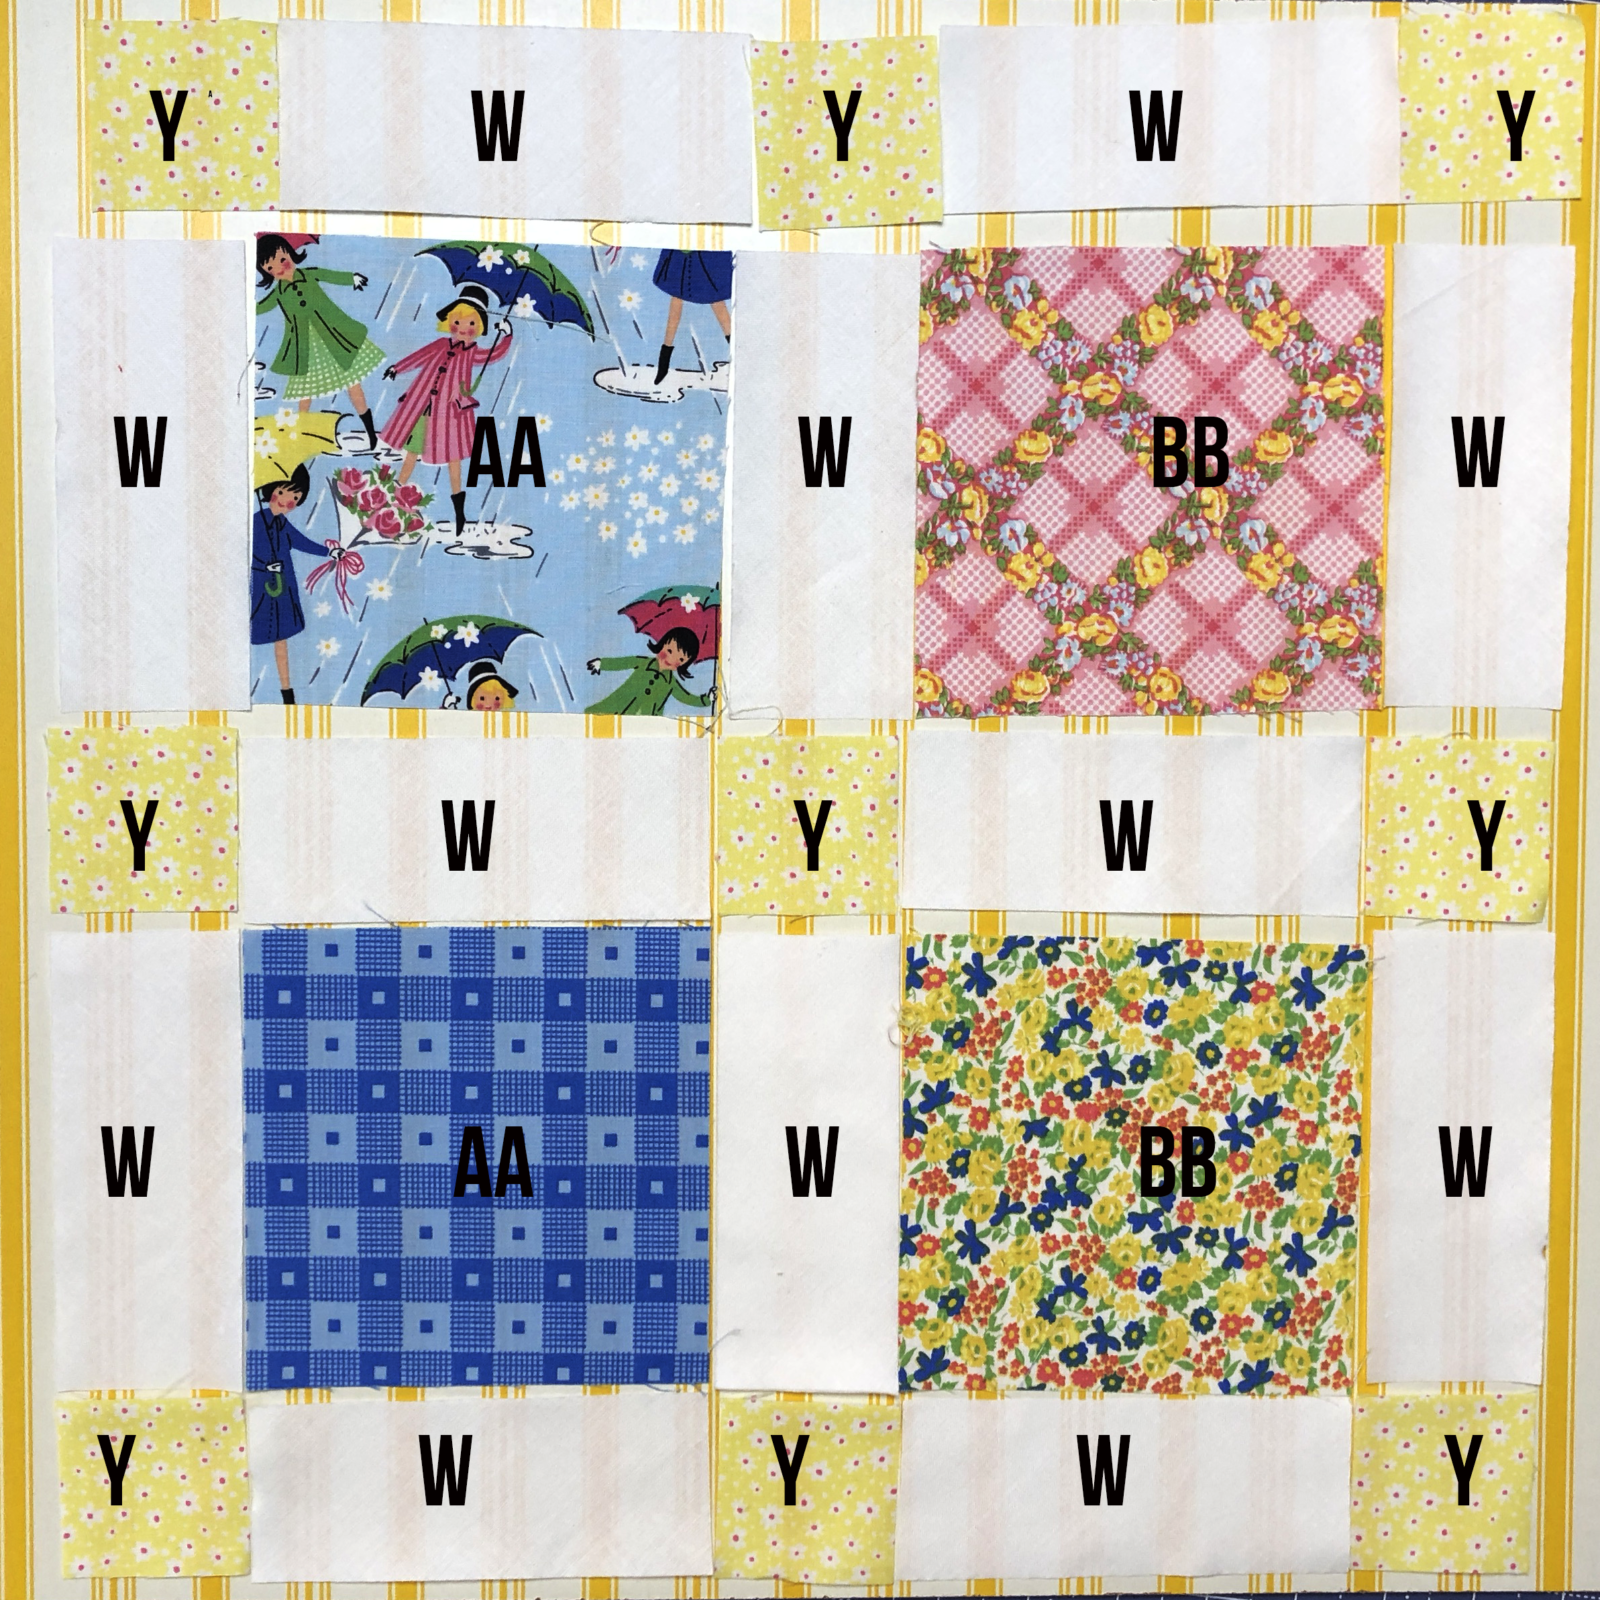 How to piece lattice quilt pattern for Mae Flowers Lattice Quilt.  Free pattern available.